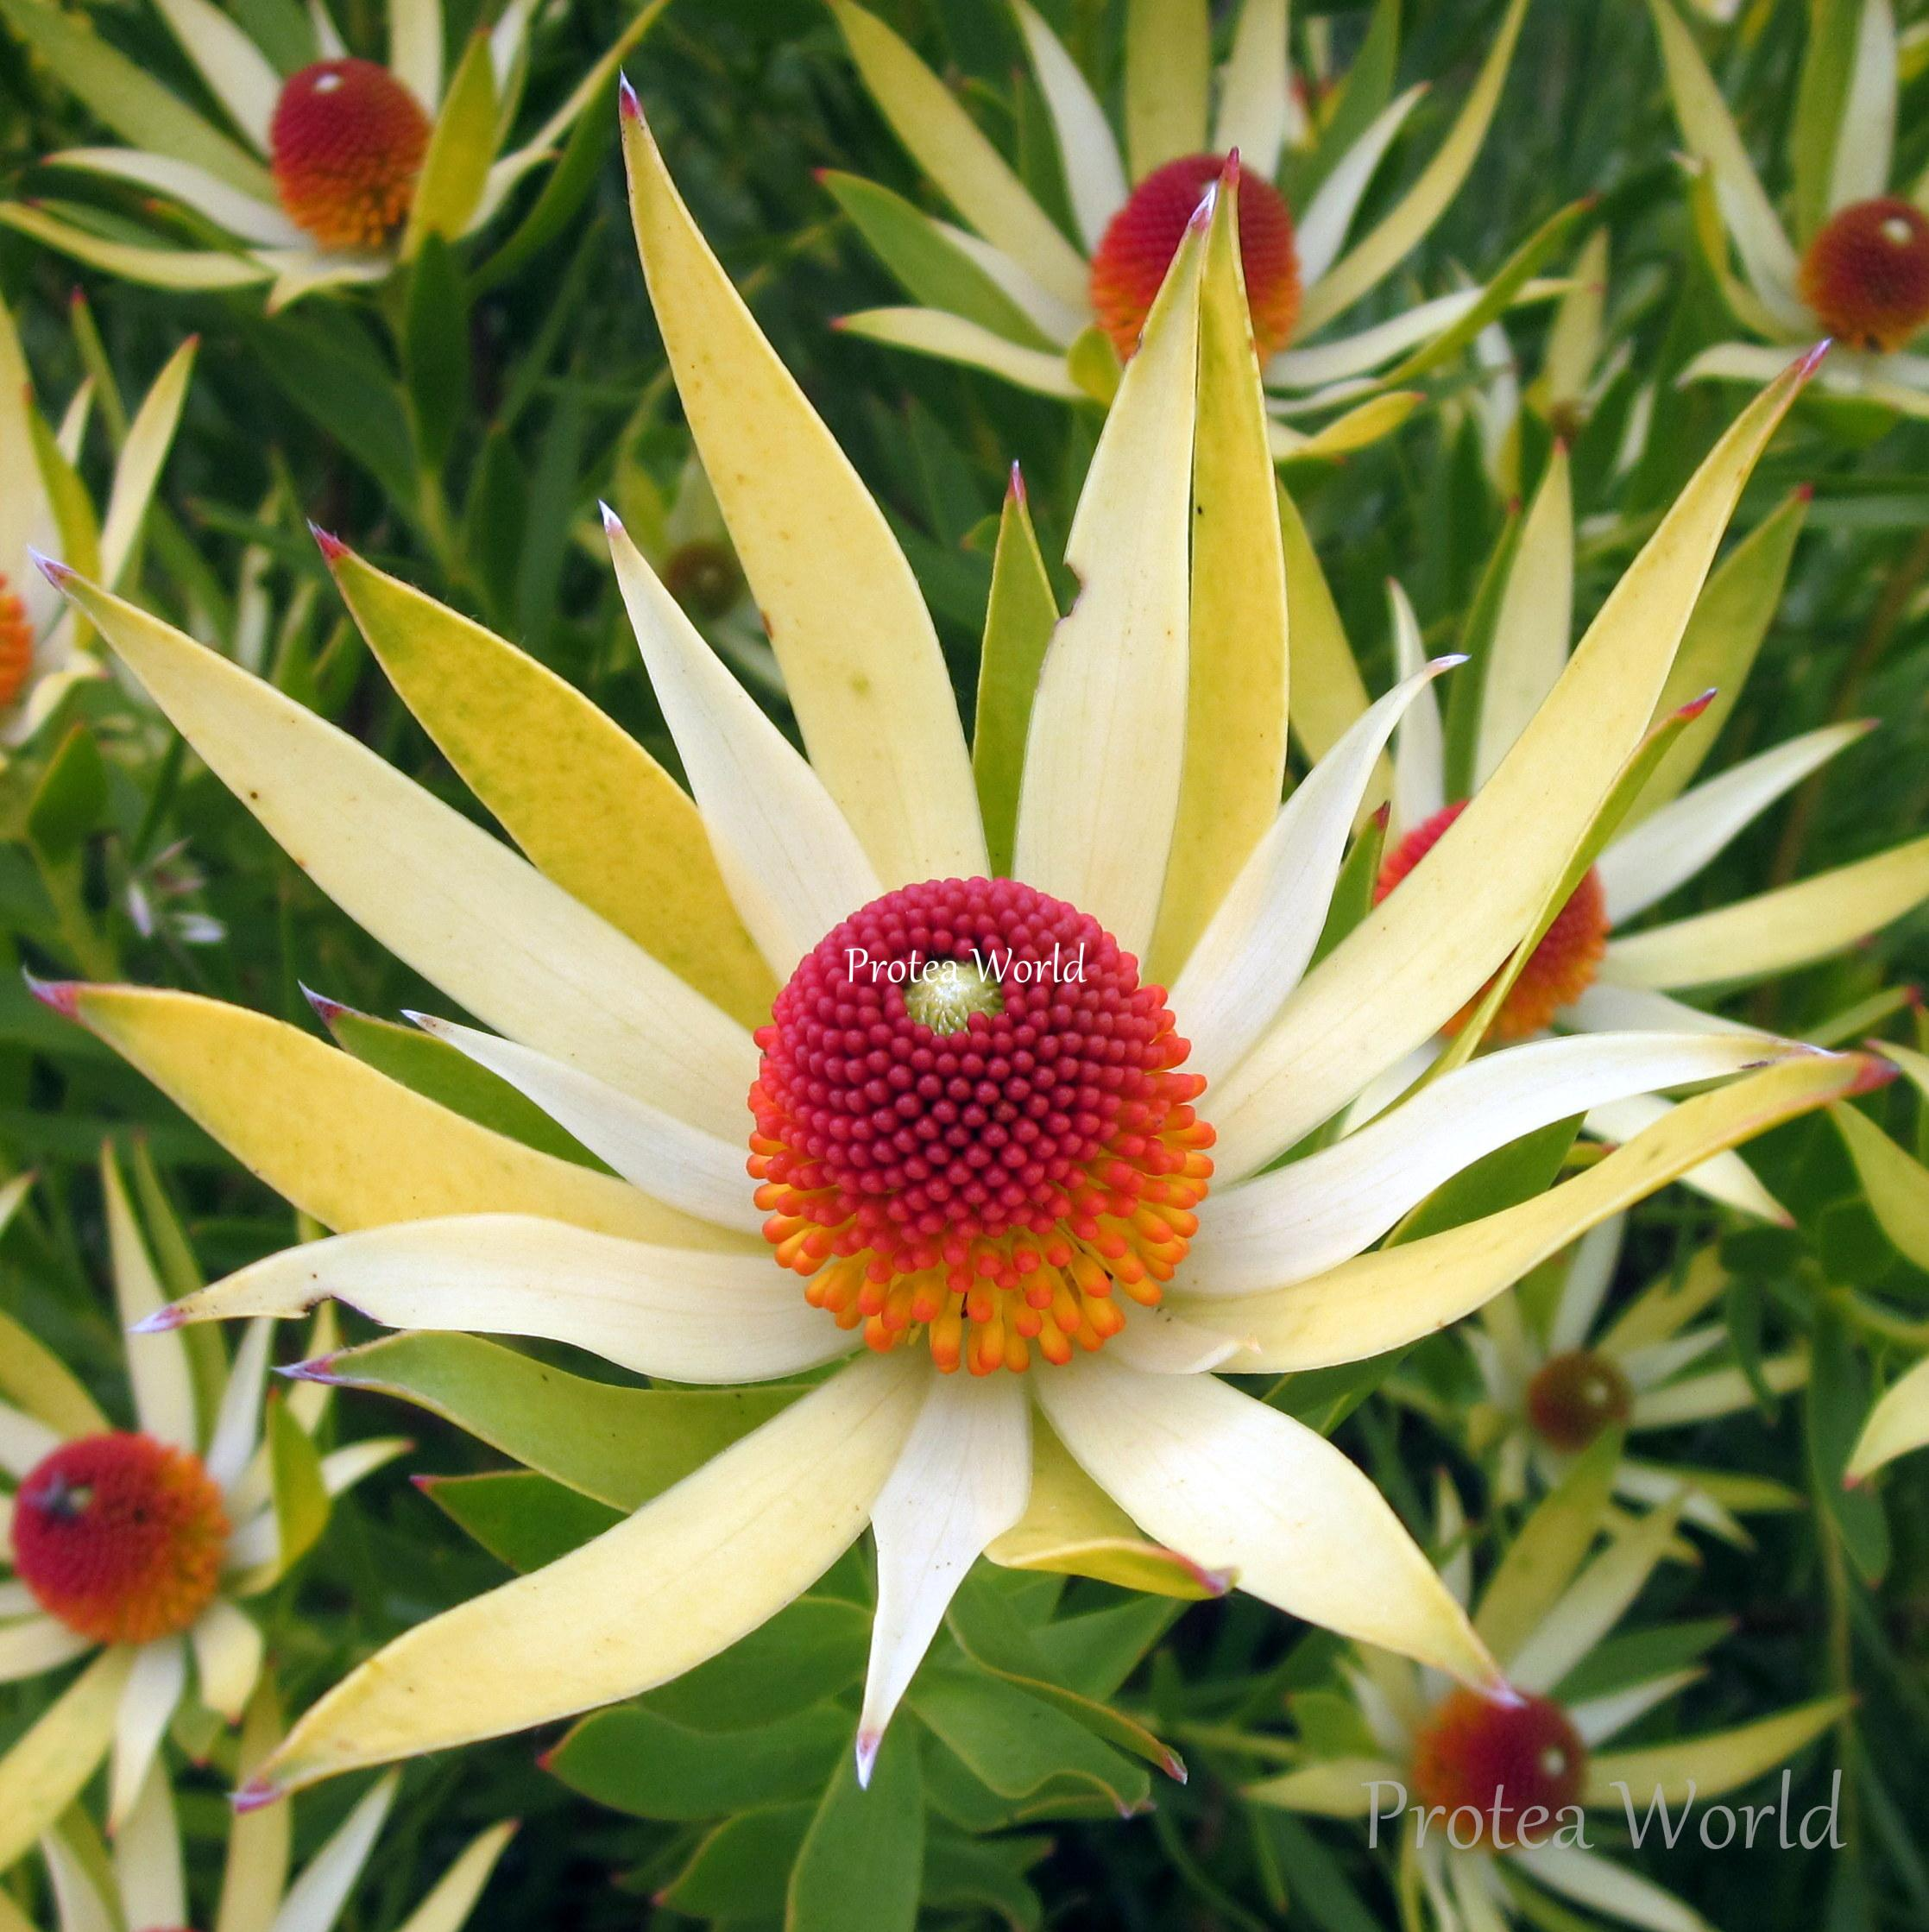 Protea World, Protea Plants Online and Nursery, Wildfire ...